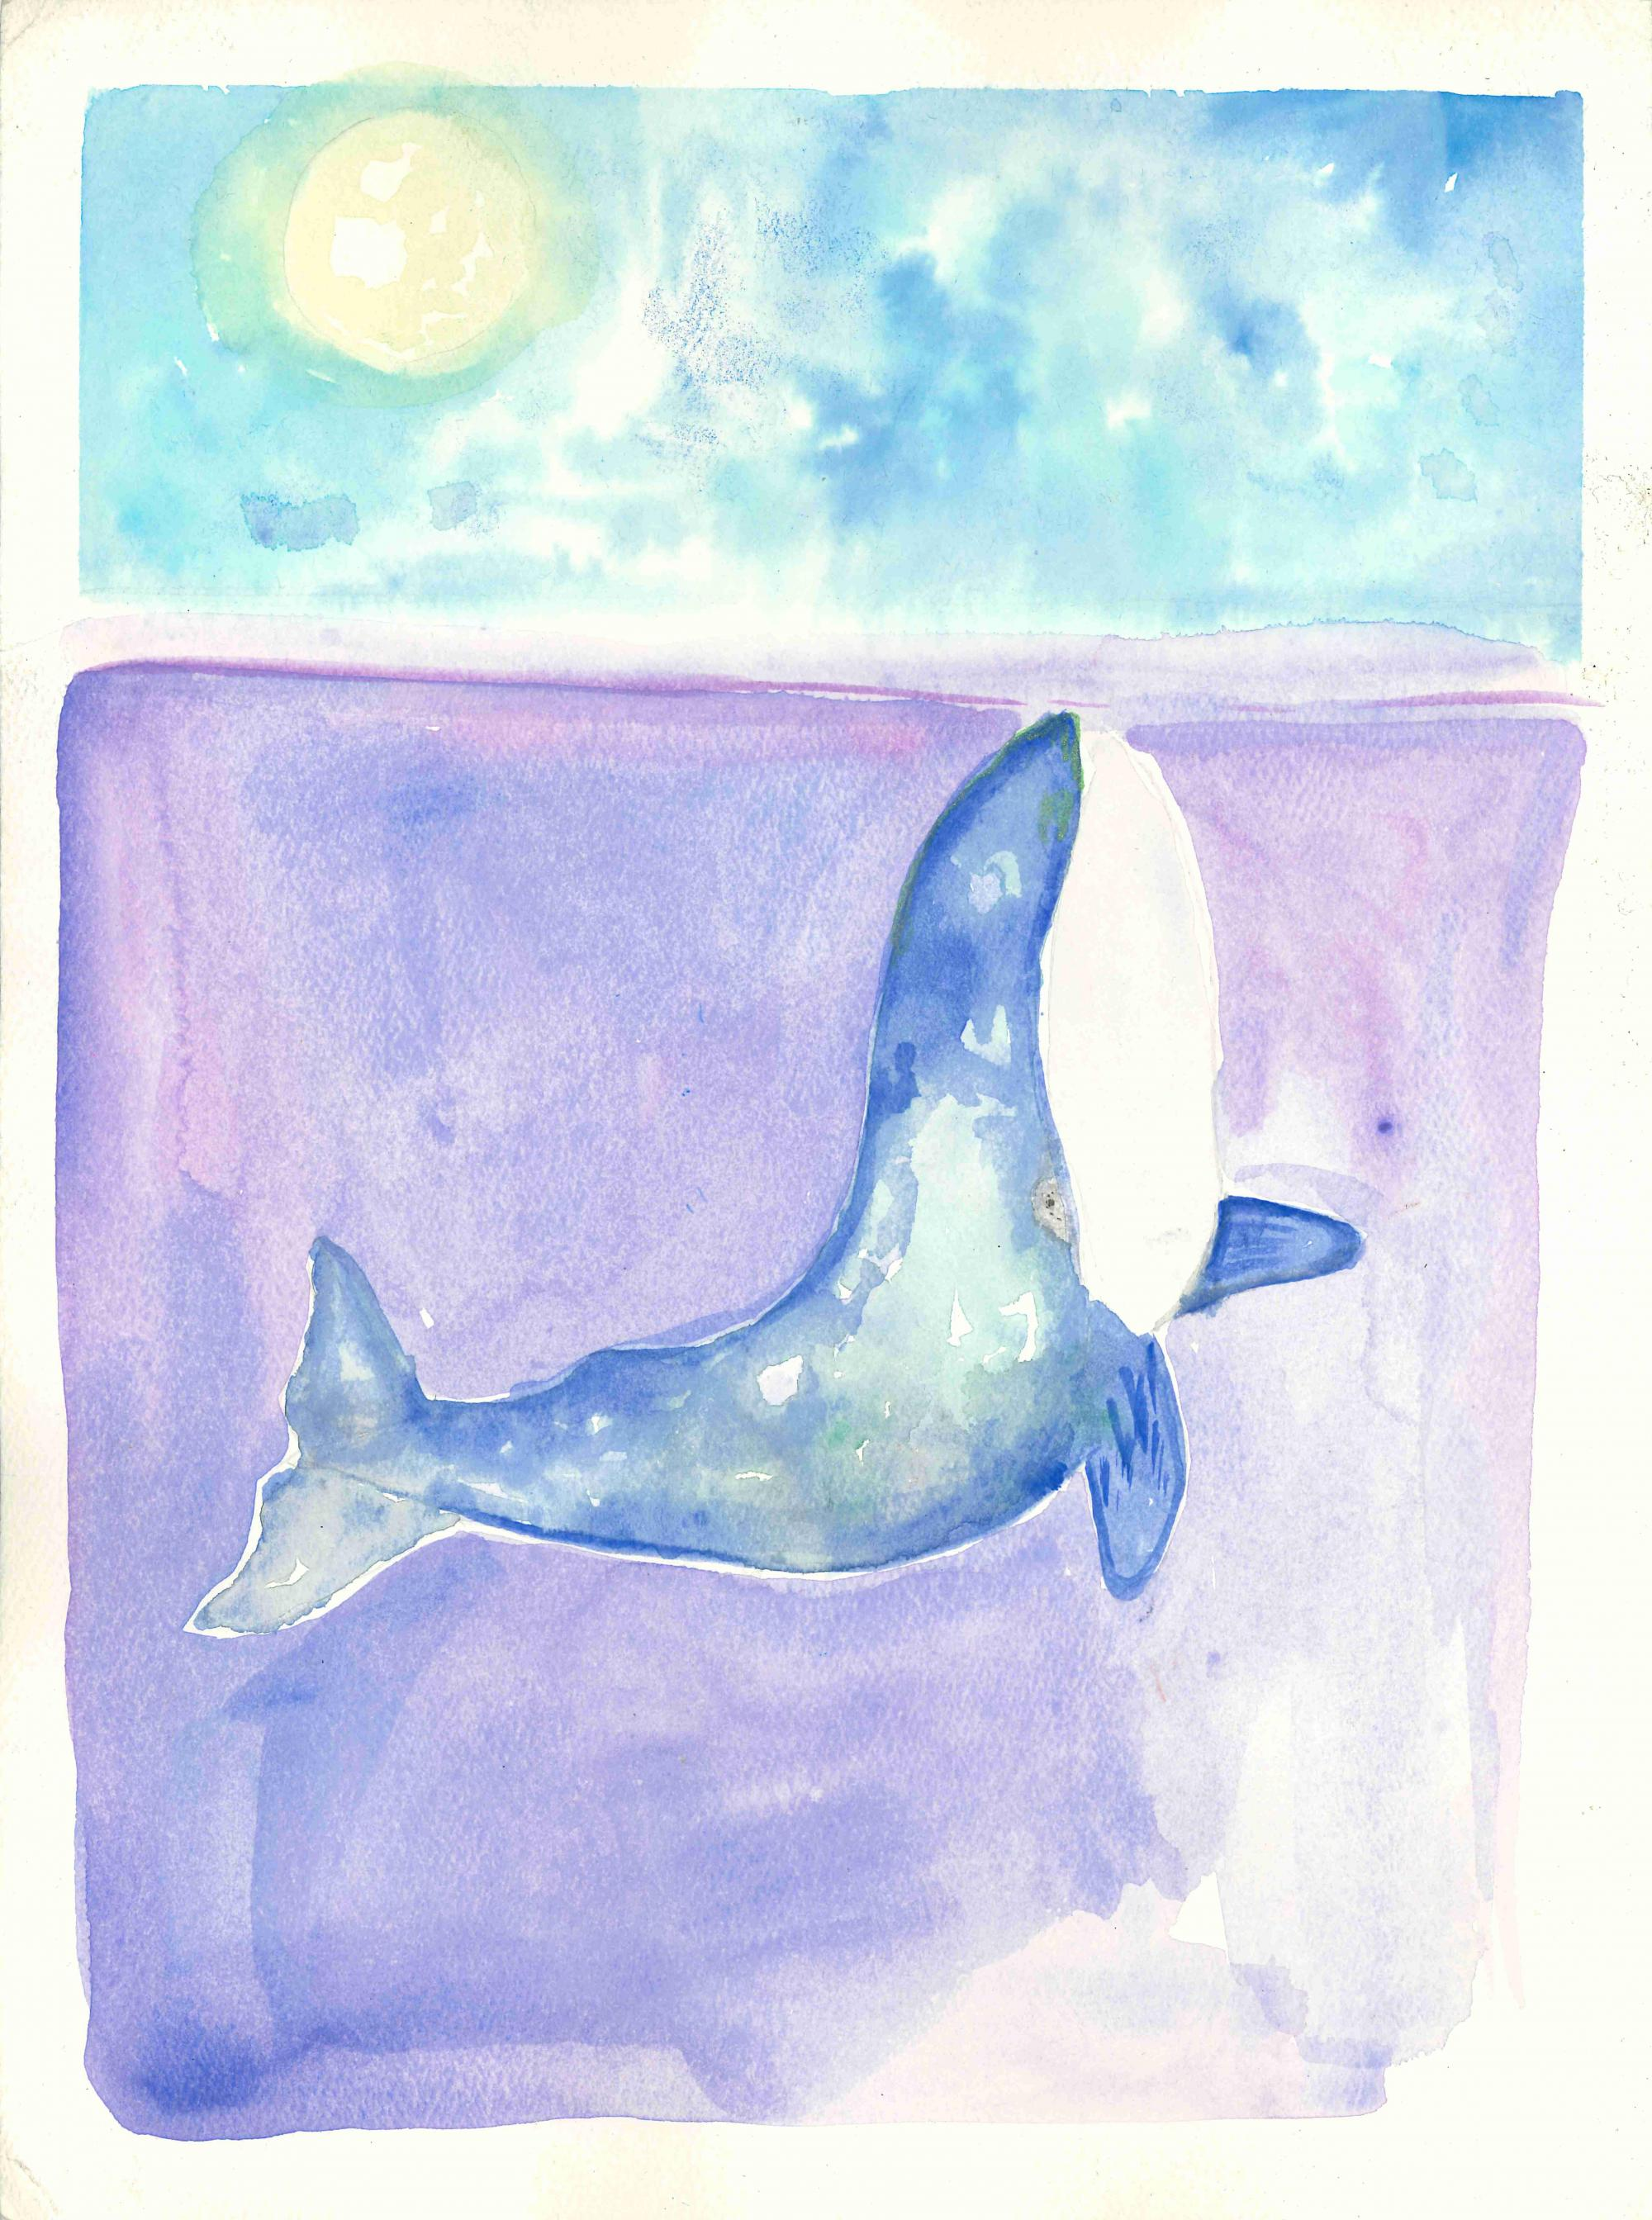 """Starry Whale"" Gabriel Wolfersberger, age 9. Atlanta, Georgia. United States. Springmont School. Teacher: Theresa Dean. River of Words 2018 Finalist."